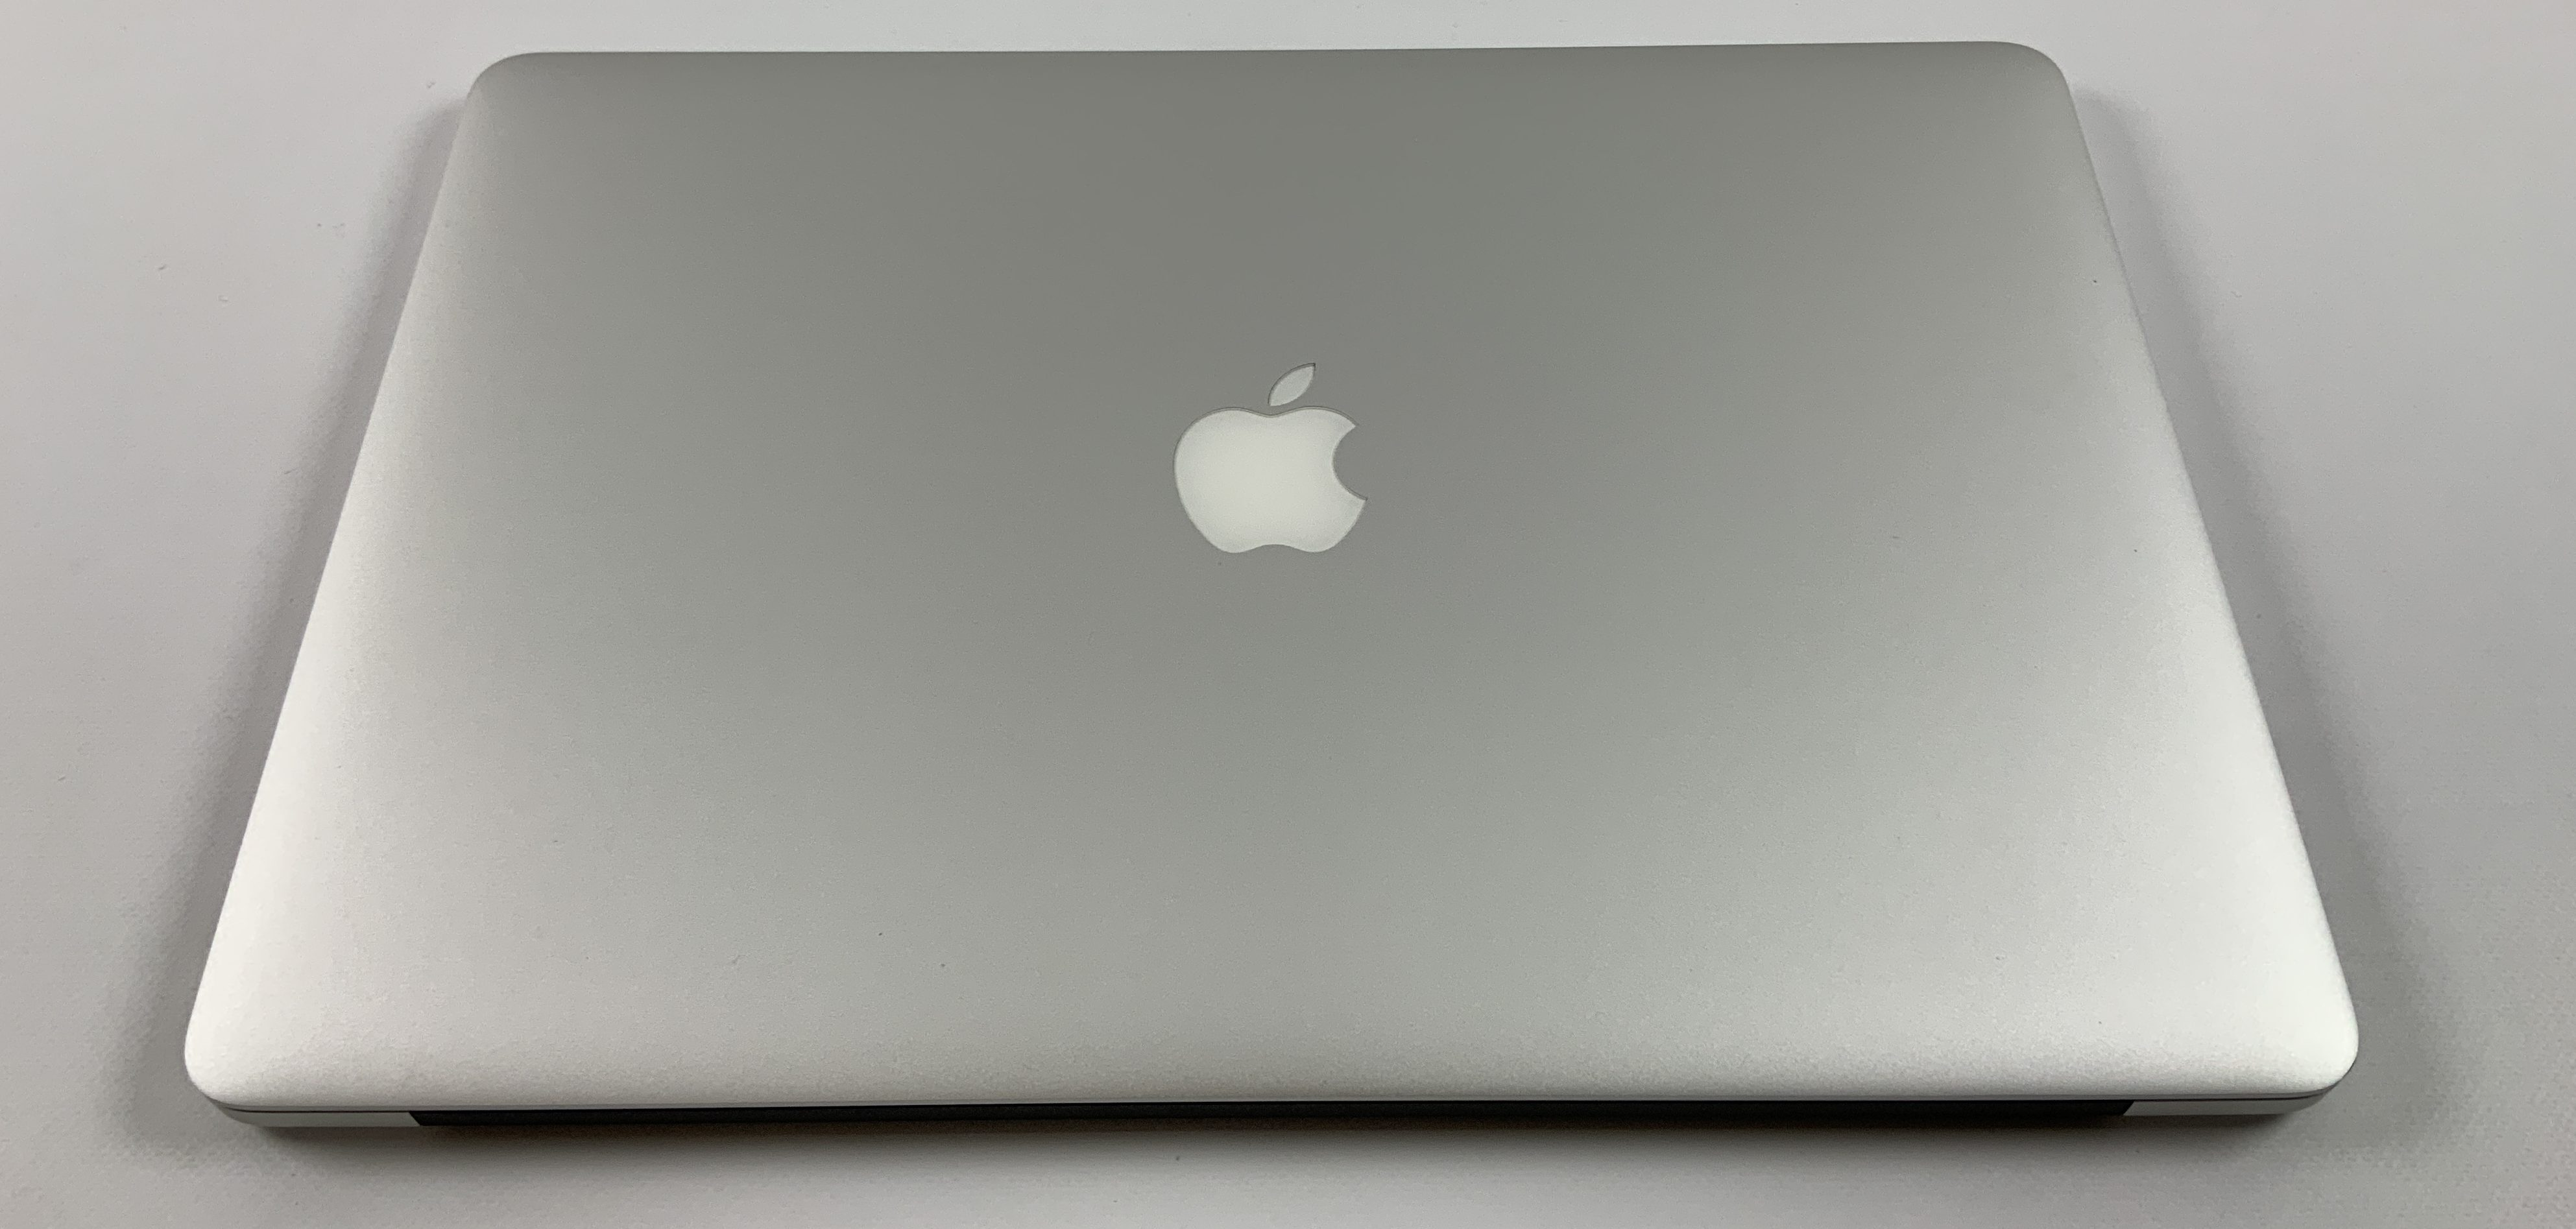 "MacBook Pro Retina 15"" Mid 2015 (Intel Quad-Core i7 2.2 GHz 16 GB RAM 256 GB SSD), Intel Quad-Core i7 2.2 GHz, 16 GB RAM, 256 GB SSD, Afbeelding 2"